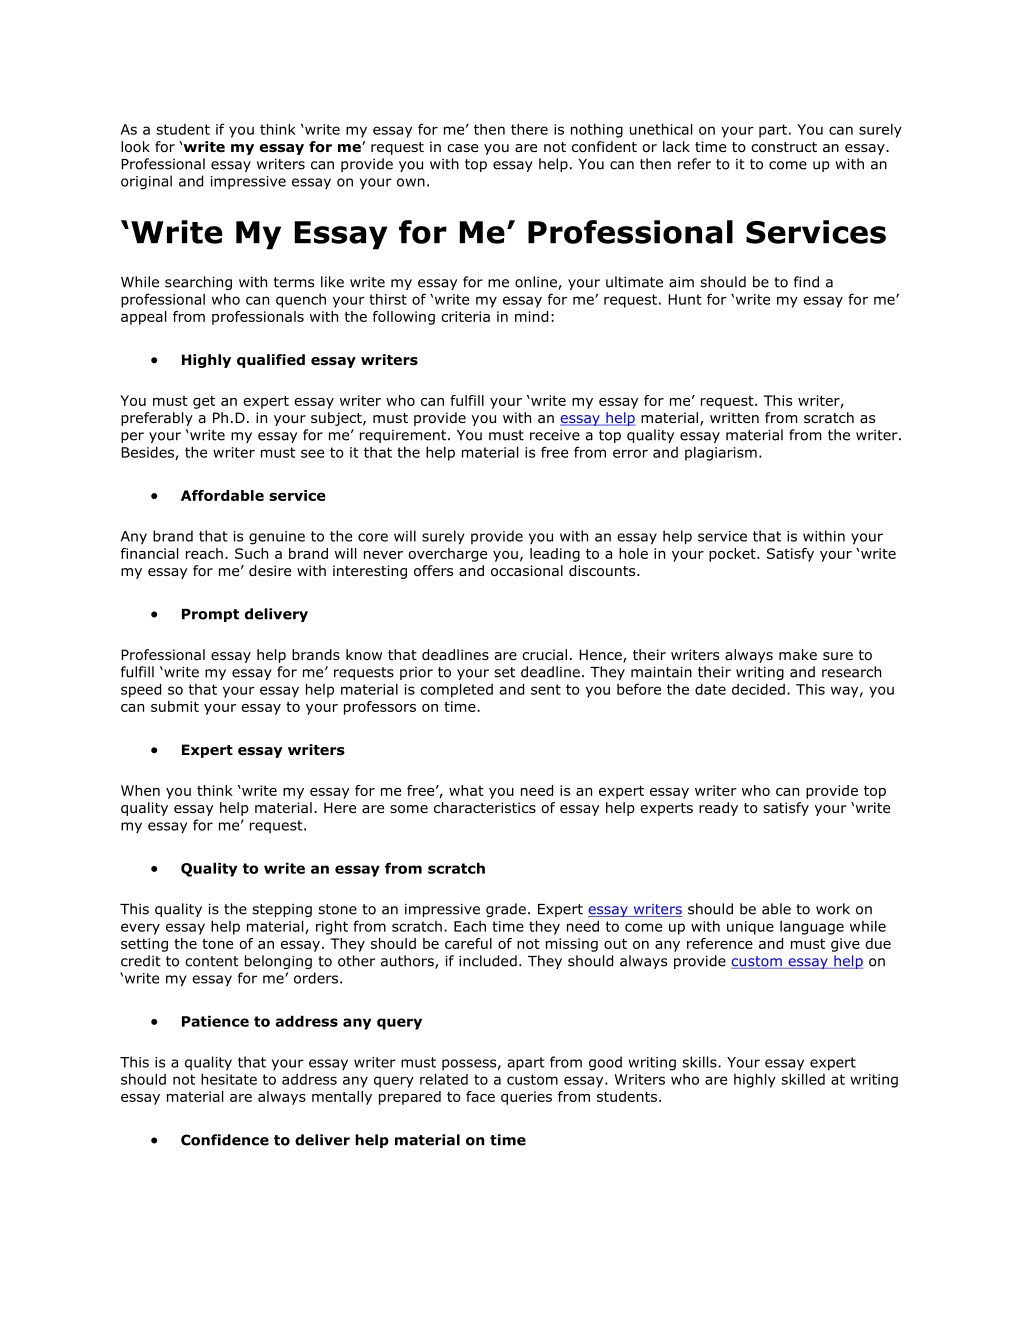 017 Write My Essay For Me Example As Student If You Think Surprising Please Generator Free Online Full